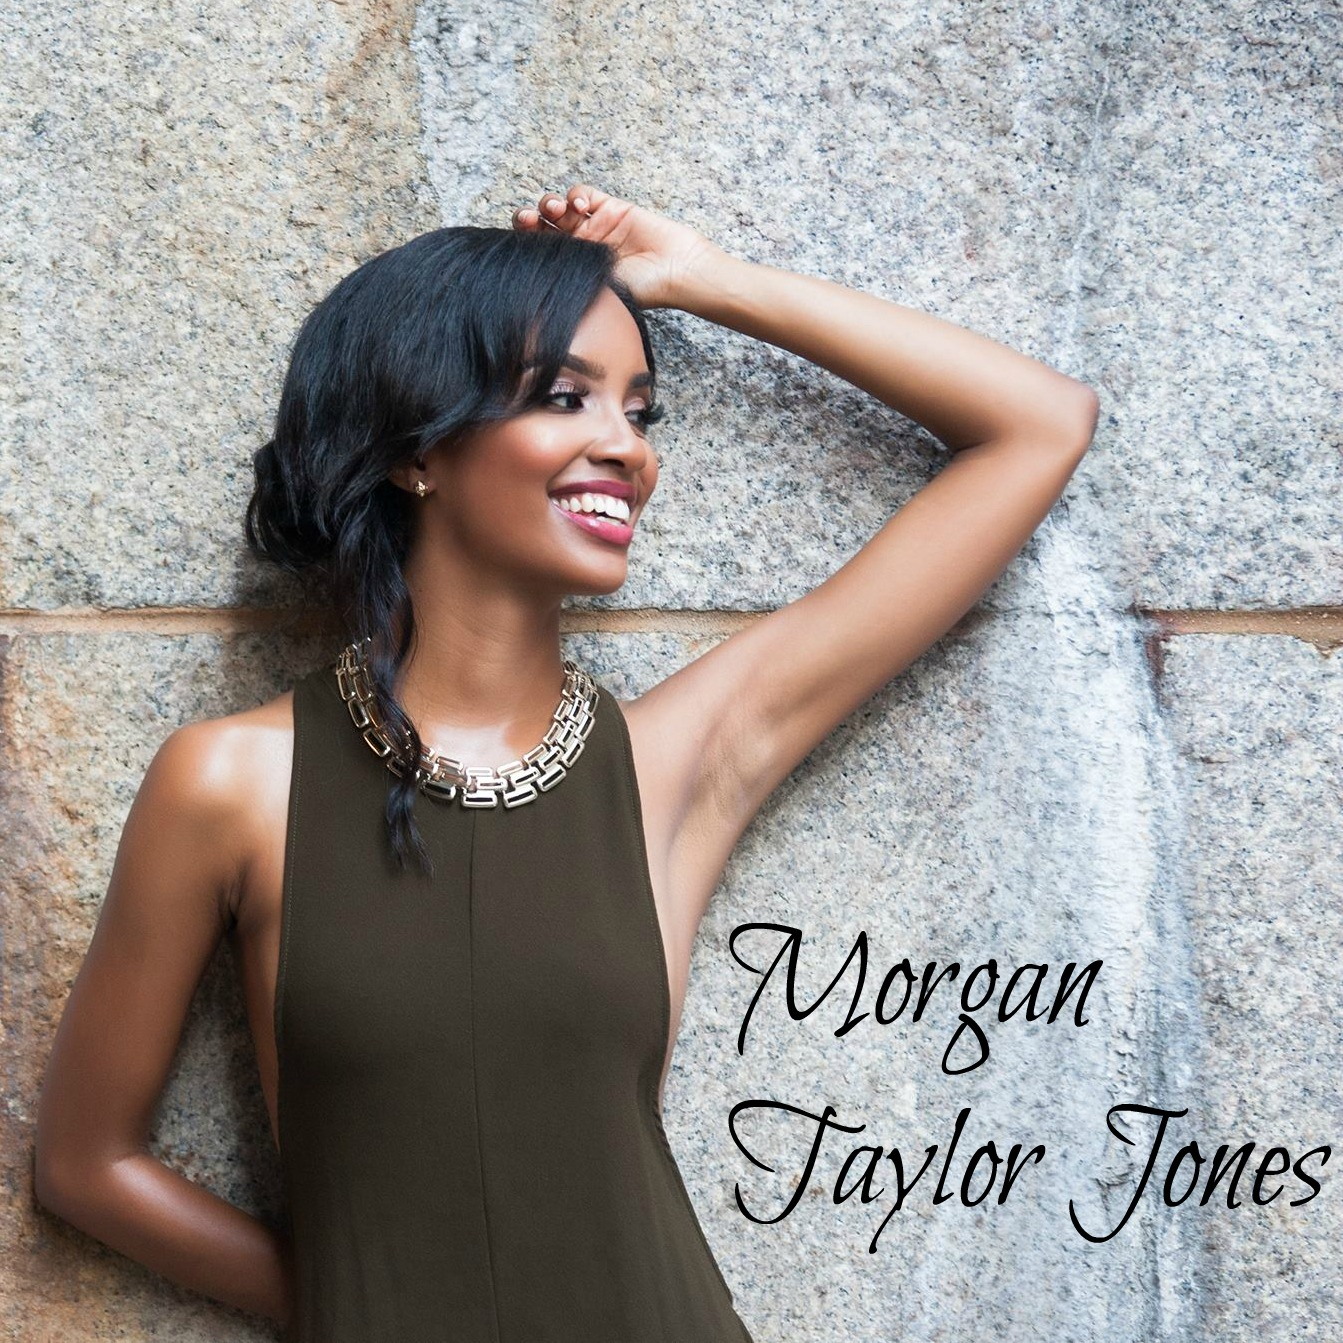 morgan taylor jones